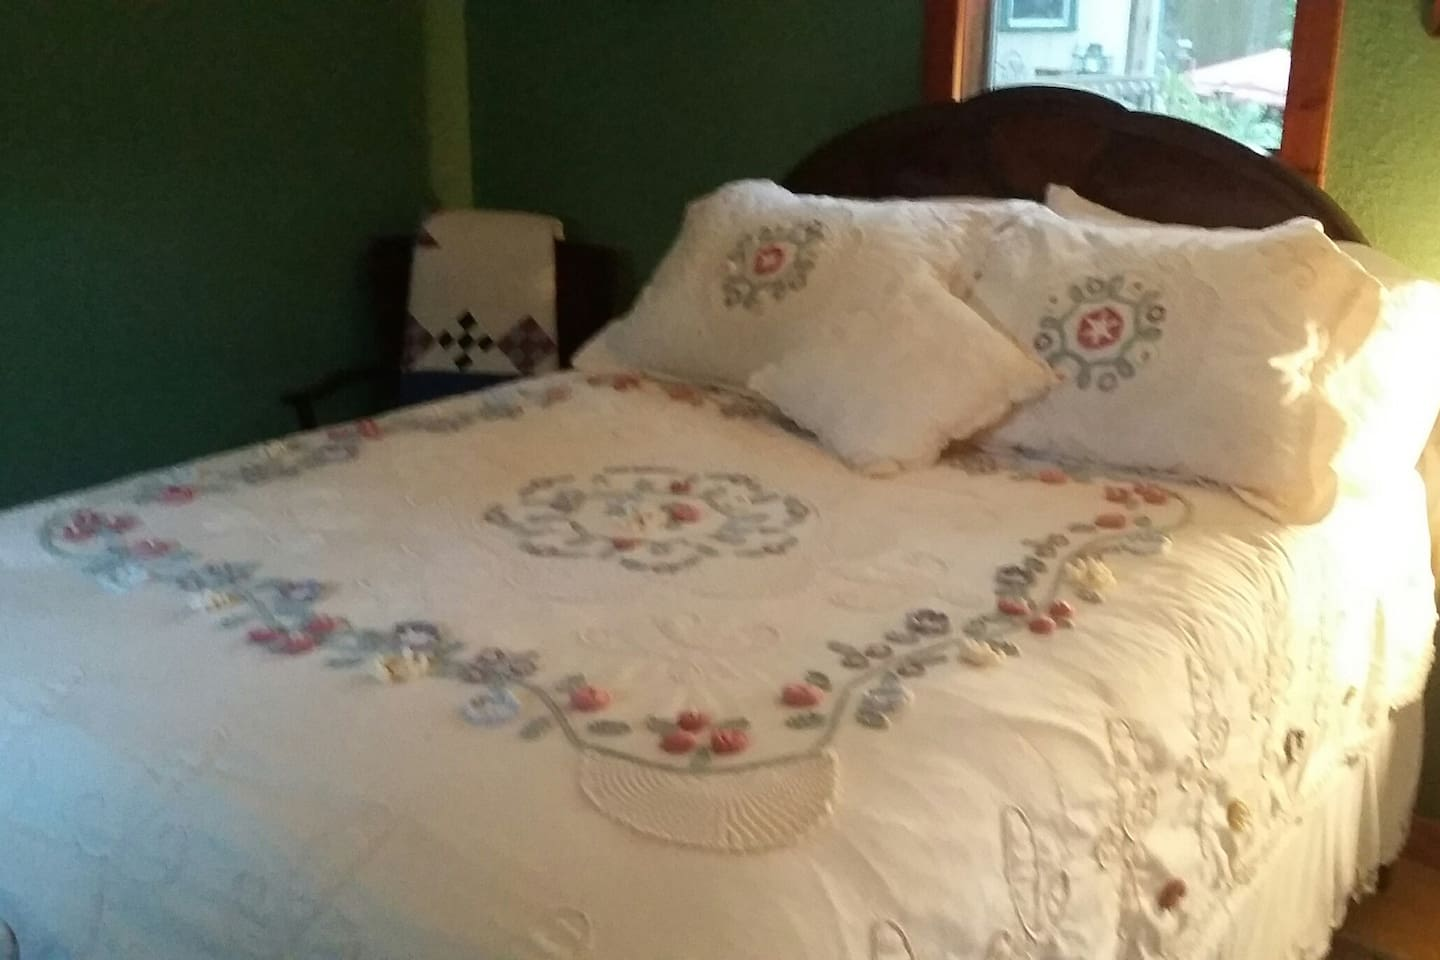 A comfortable full sized antique bed from 1900 (except the mattress!)